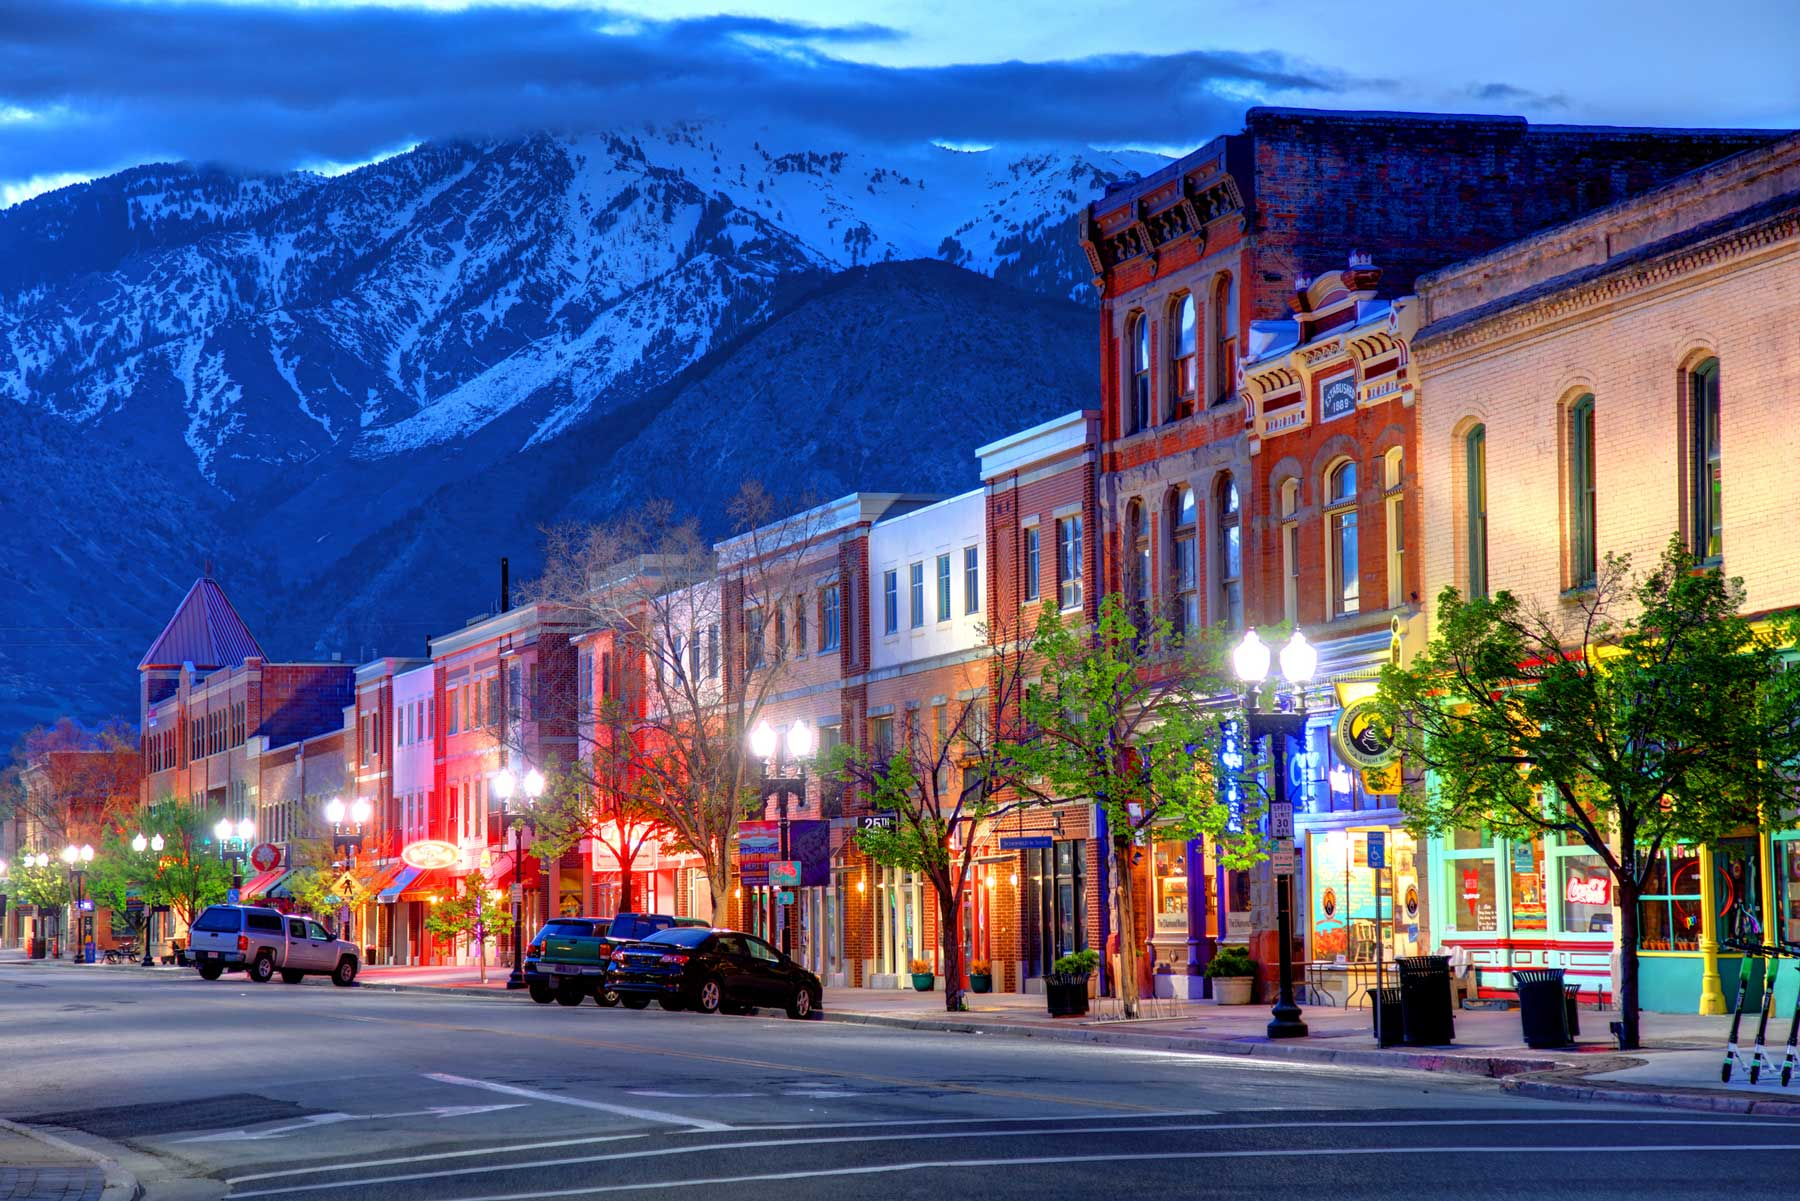 Ogden is a city and the county seat of Weber County, Utah